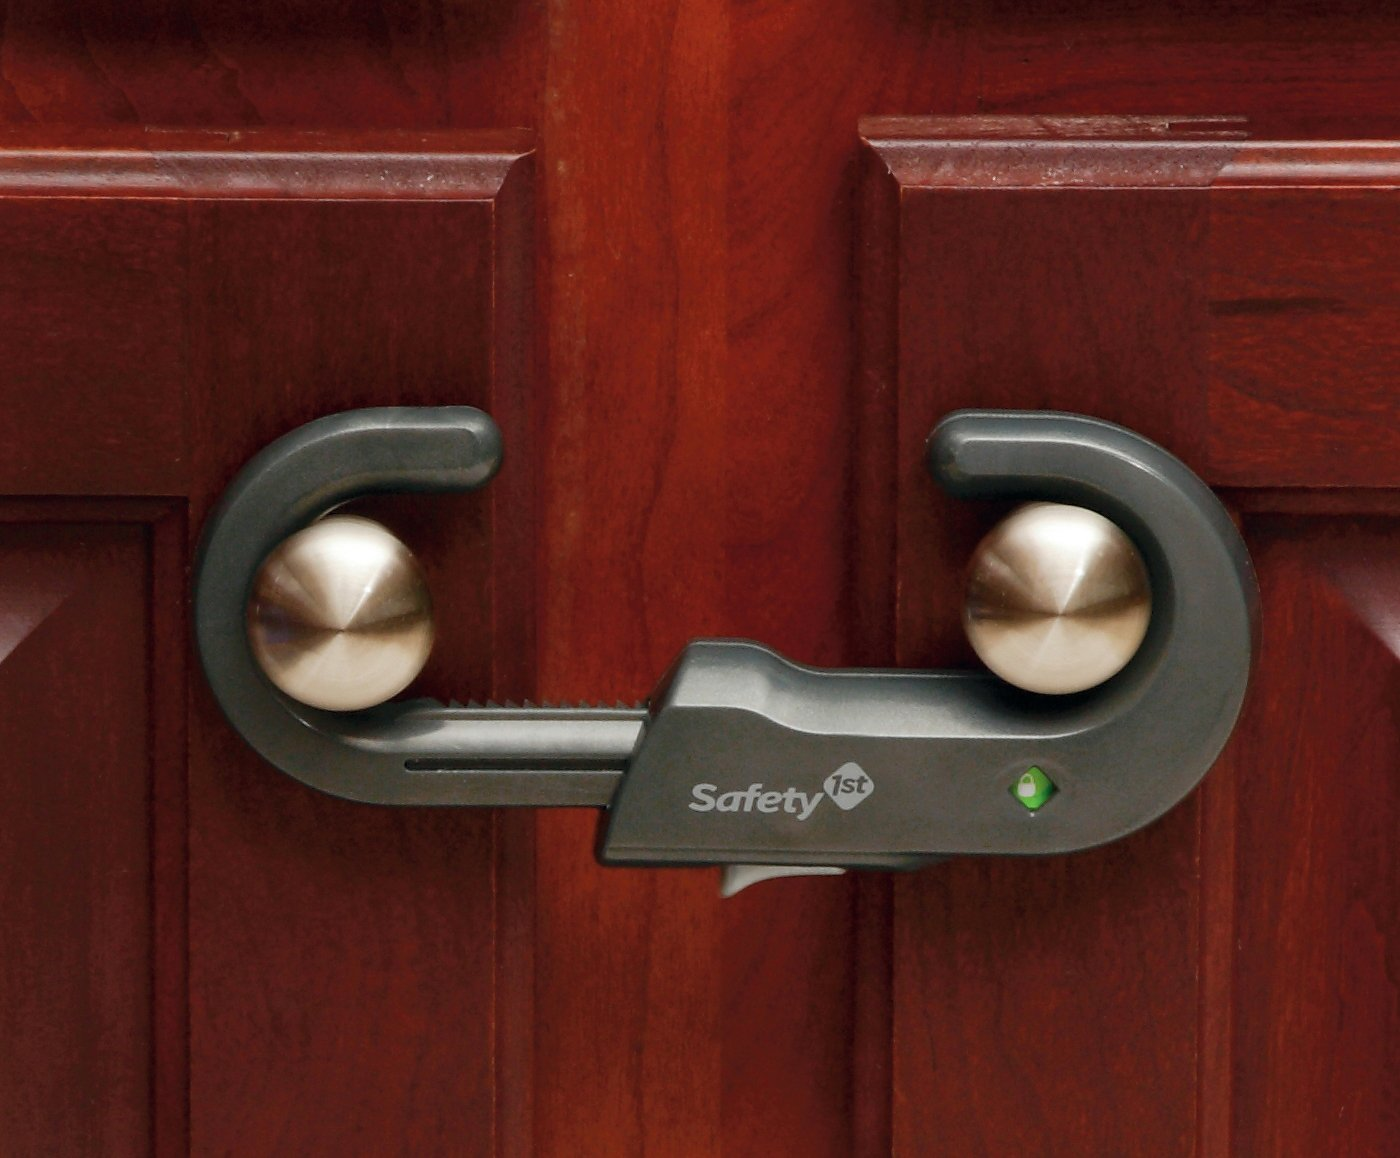 Safety 1st Cabinet Lock Amazoncom Safety 1st Grip N Go Cabinet Lock Decor 2 Count Baby